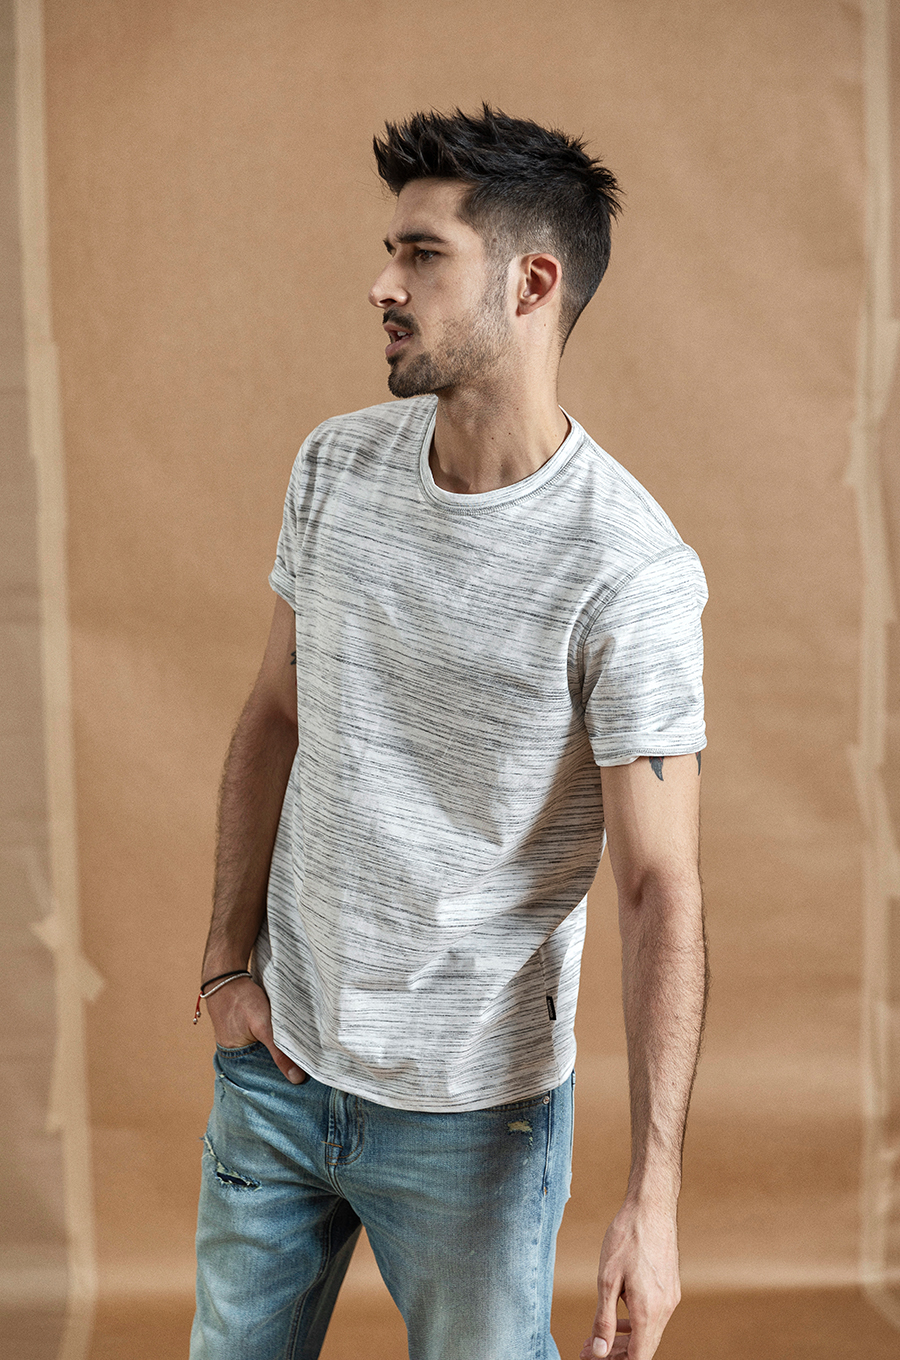 SIMWOOD 2020 summer new Mélange striped t-shirt men o-neck t shirt high quality plus size brand clothing o-neck tops 190432